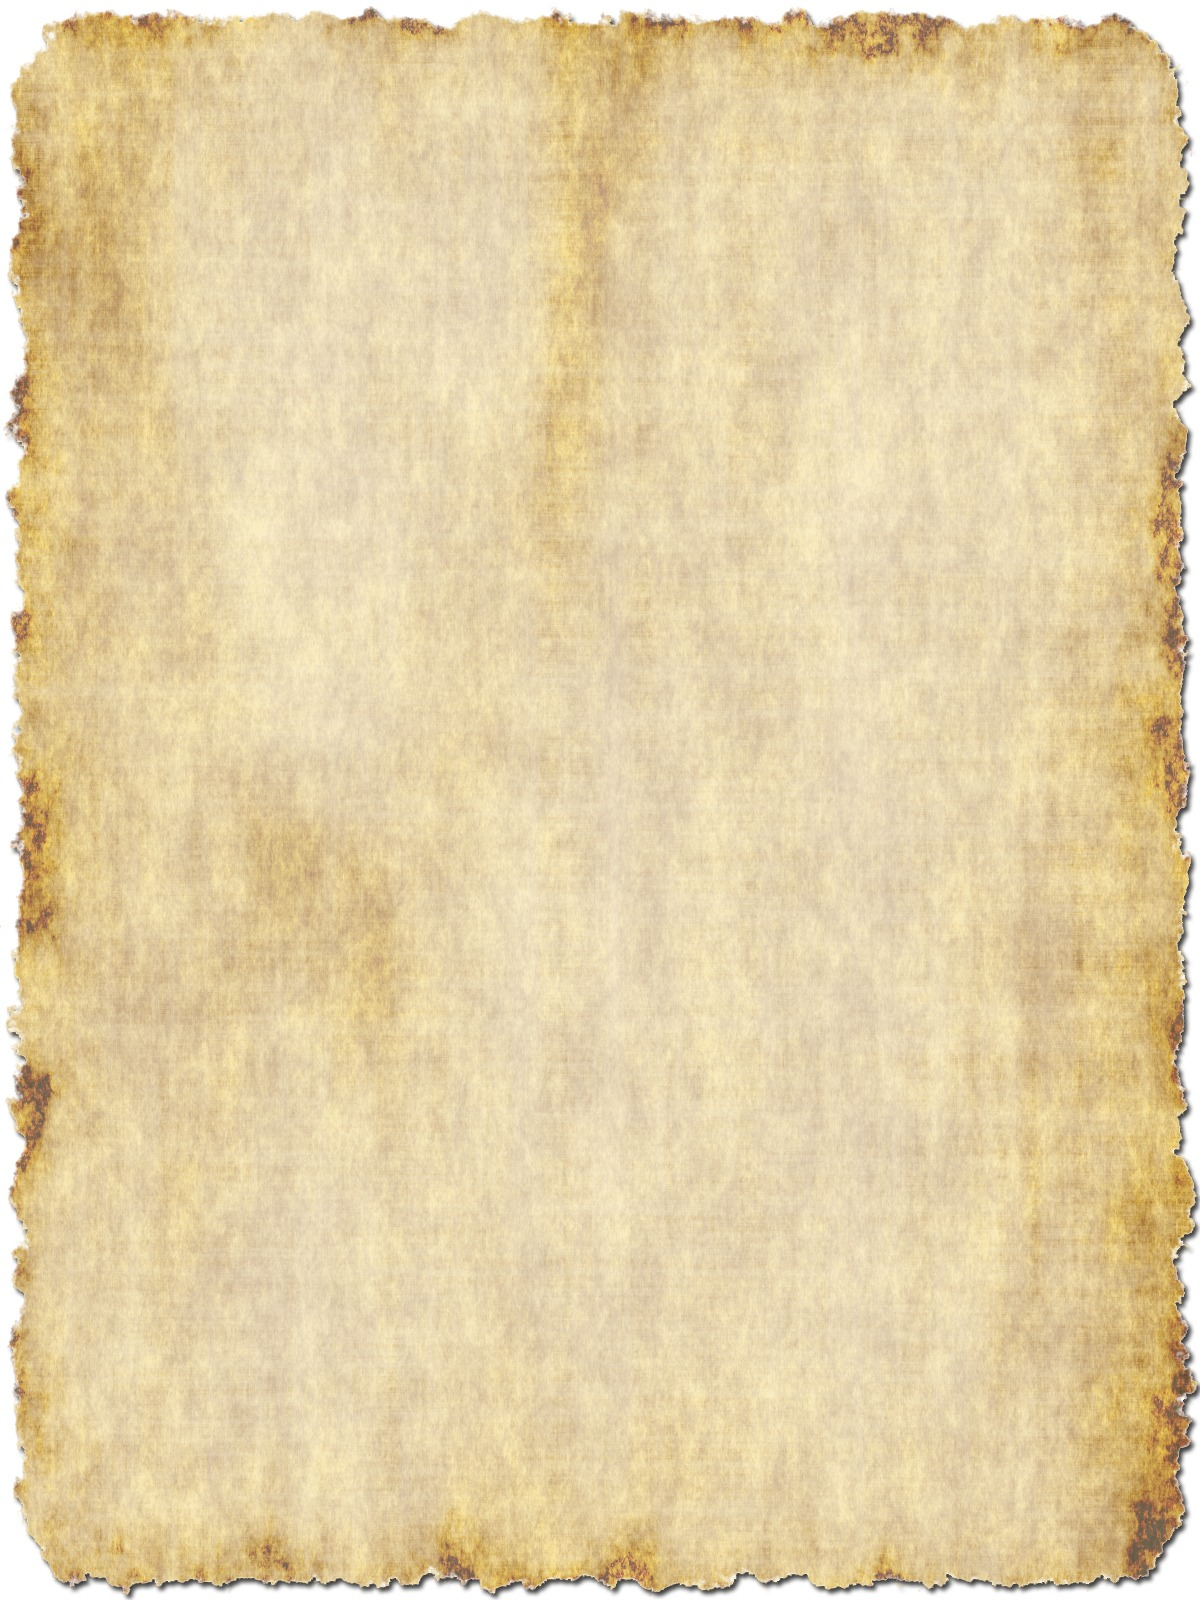 3 Parchment Textures Check This Out